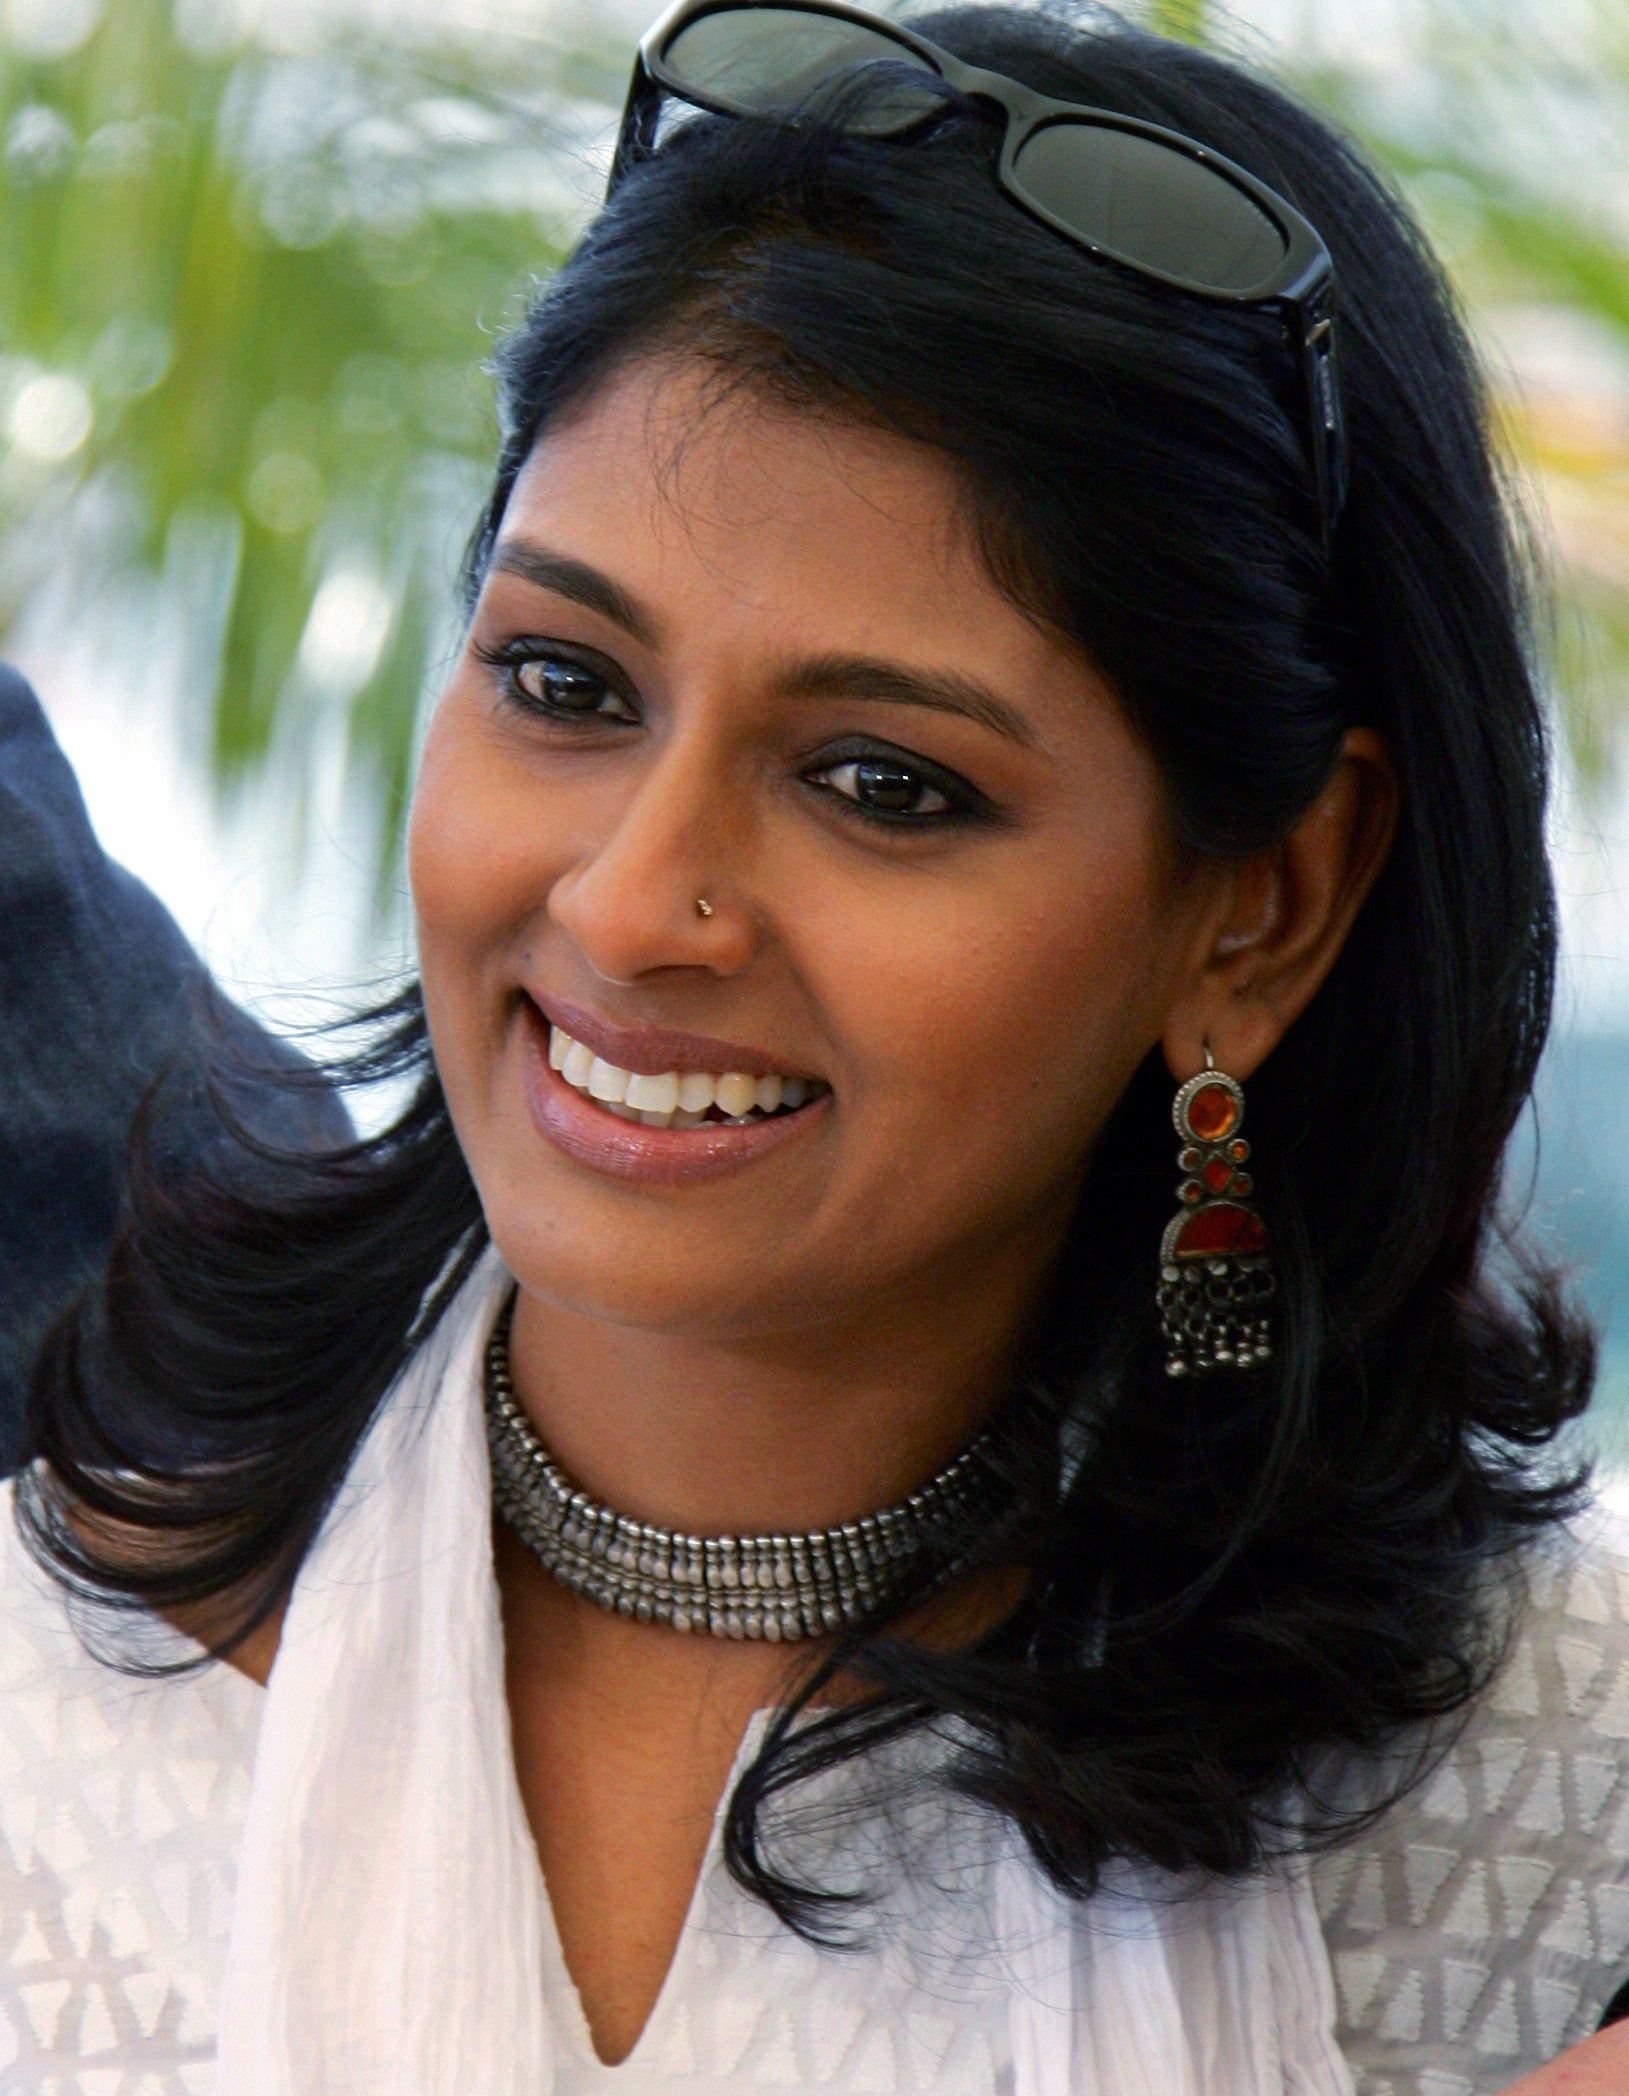 Nandita Das Navel Pics http://www.topnews.in/people/nandita-das